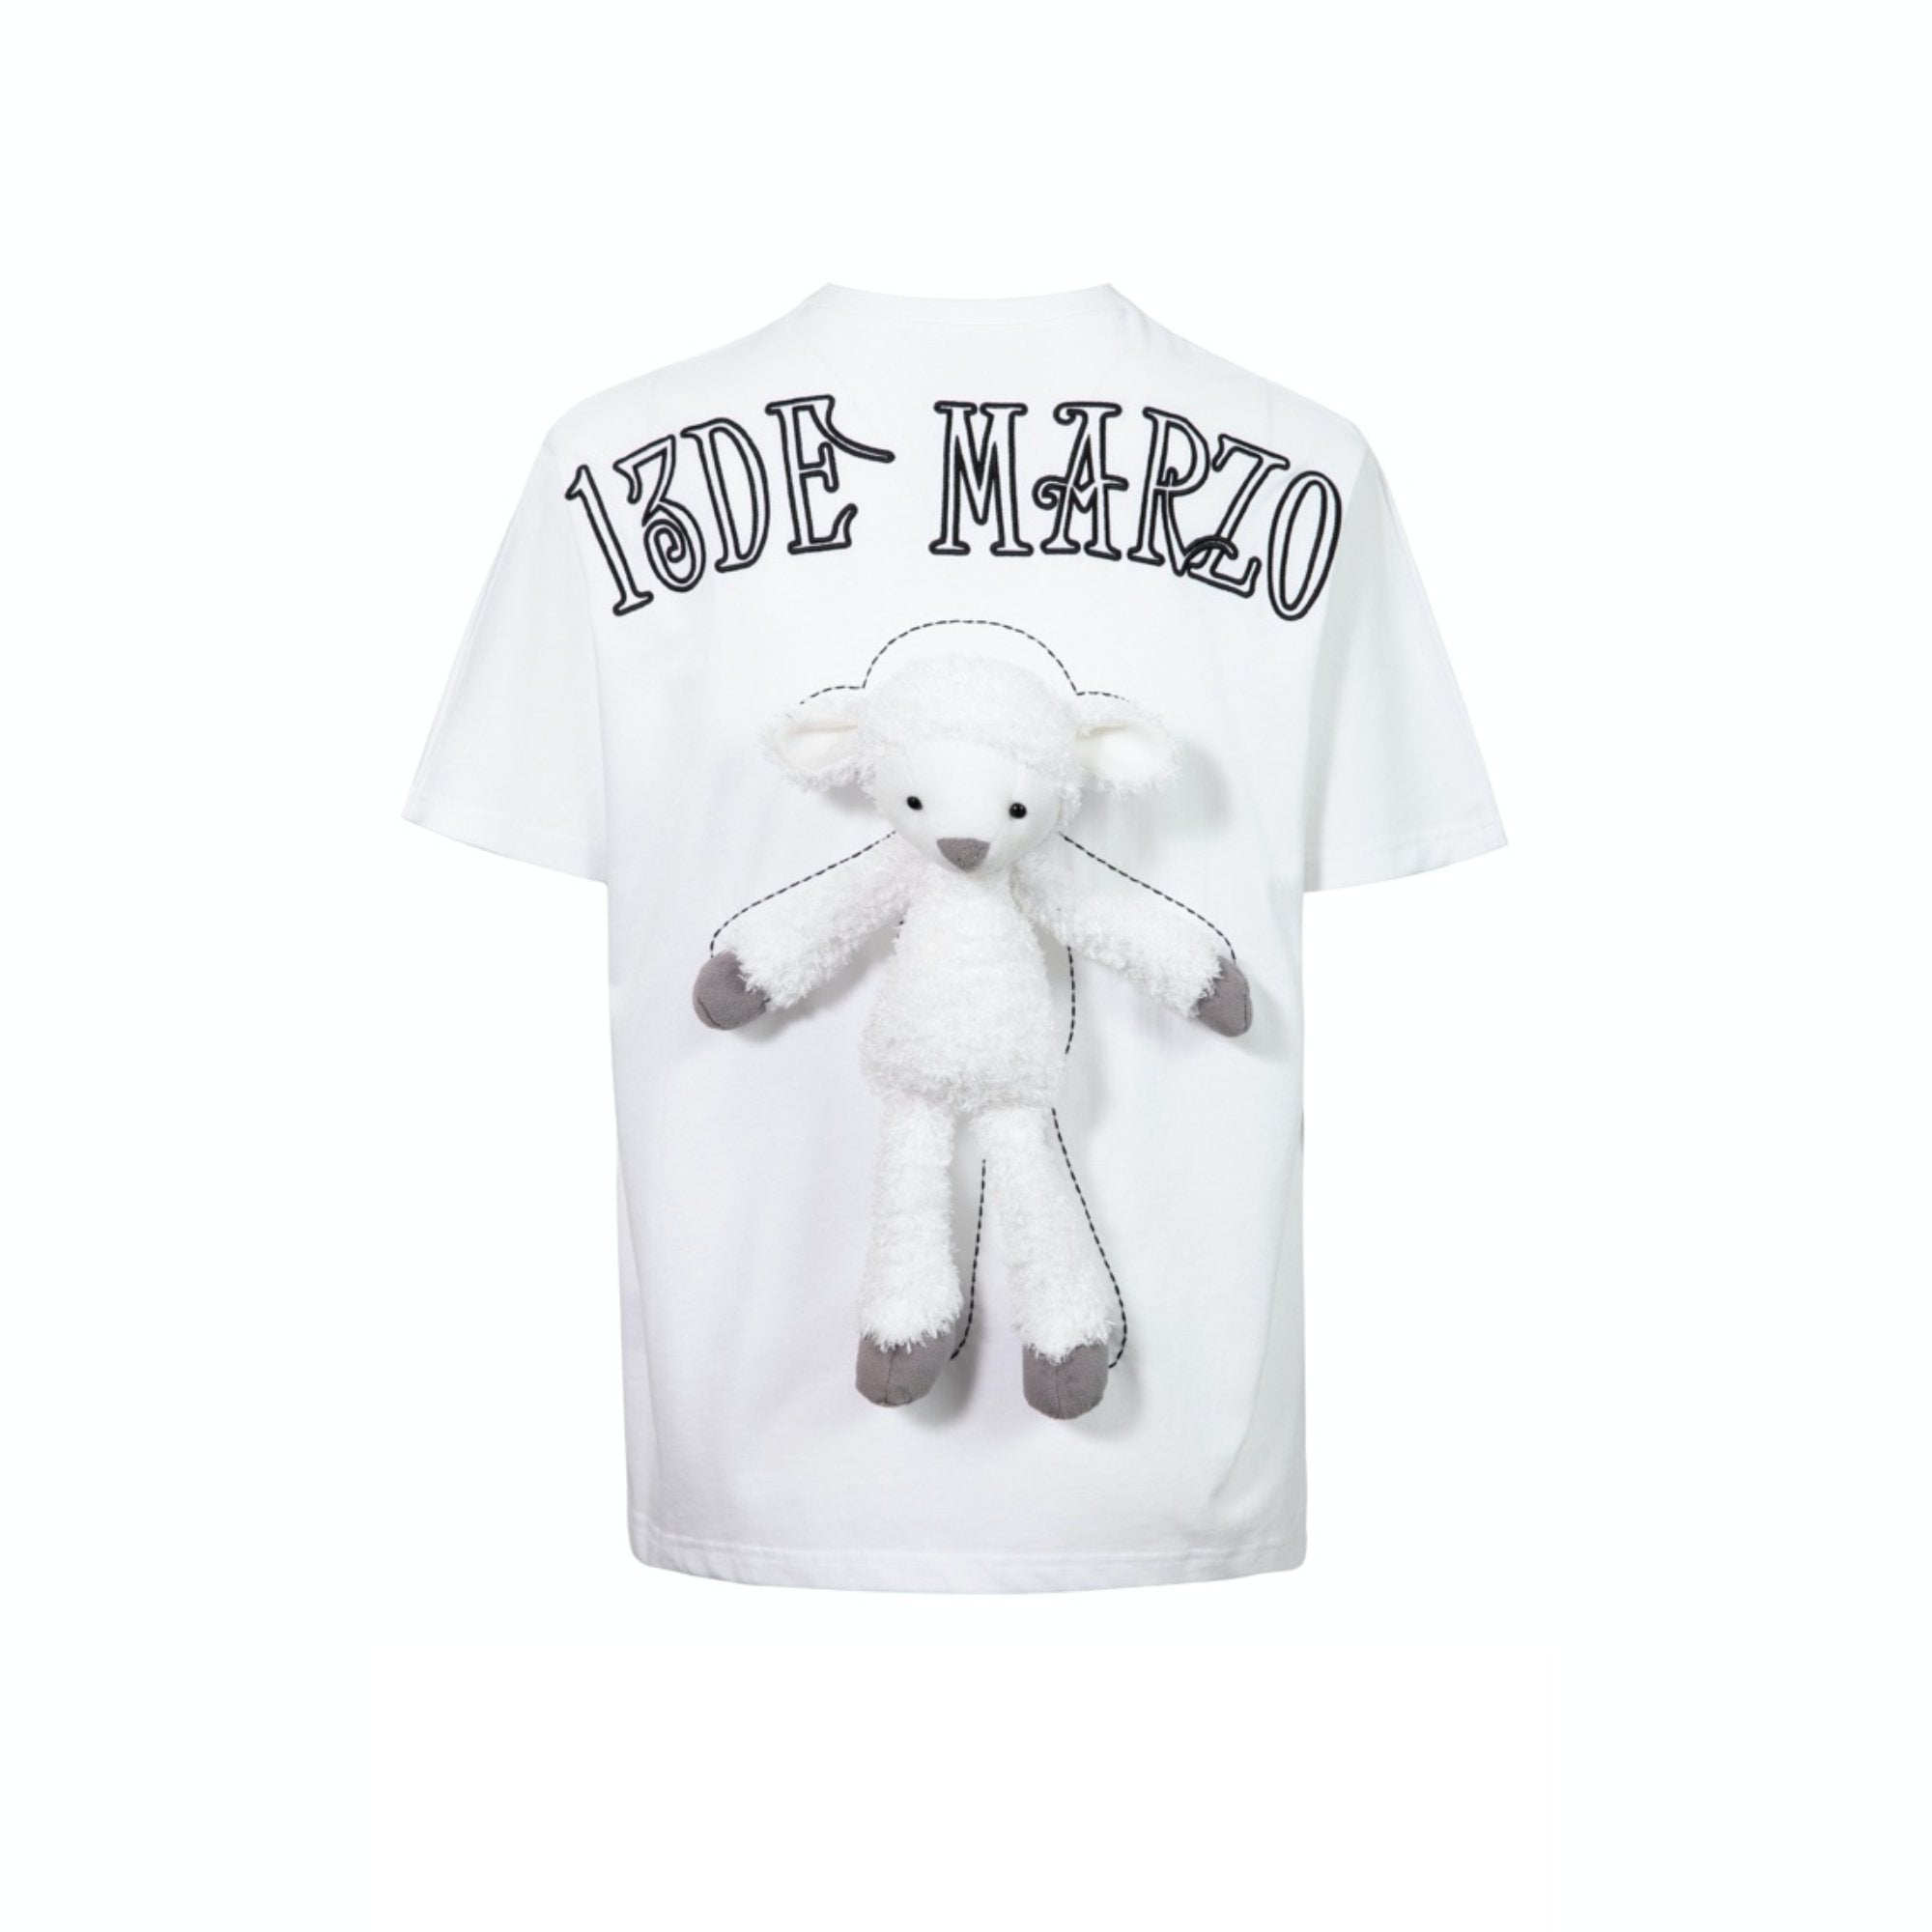 13 DE MARZO Plush Sheep Toy T-Shirt White | MADA IN CHINA